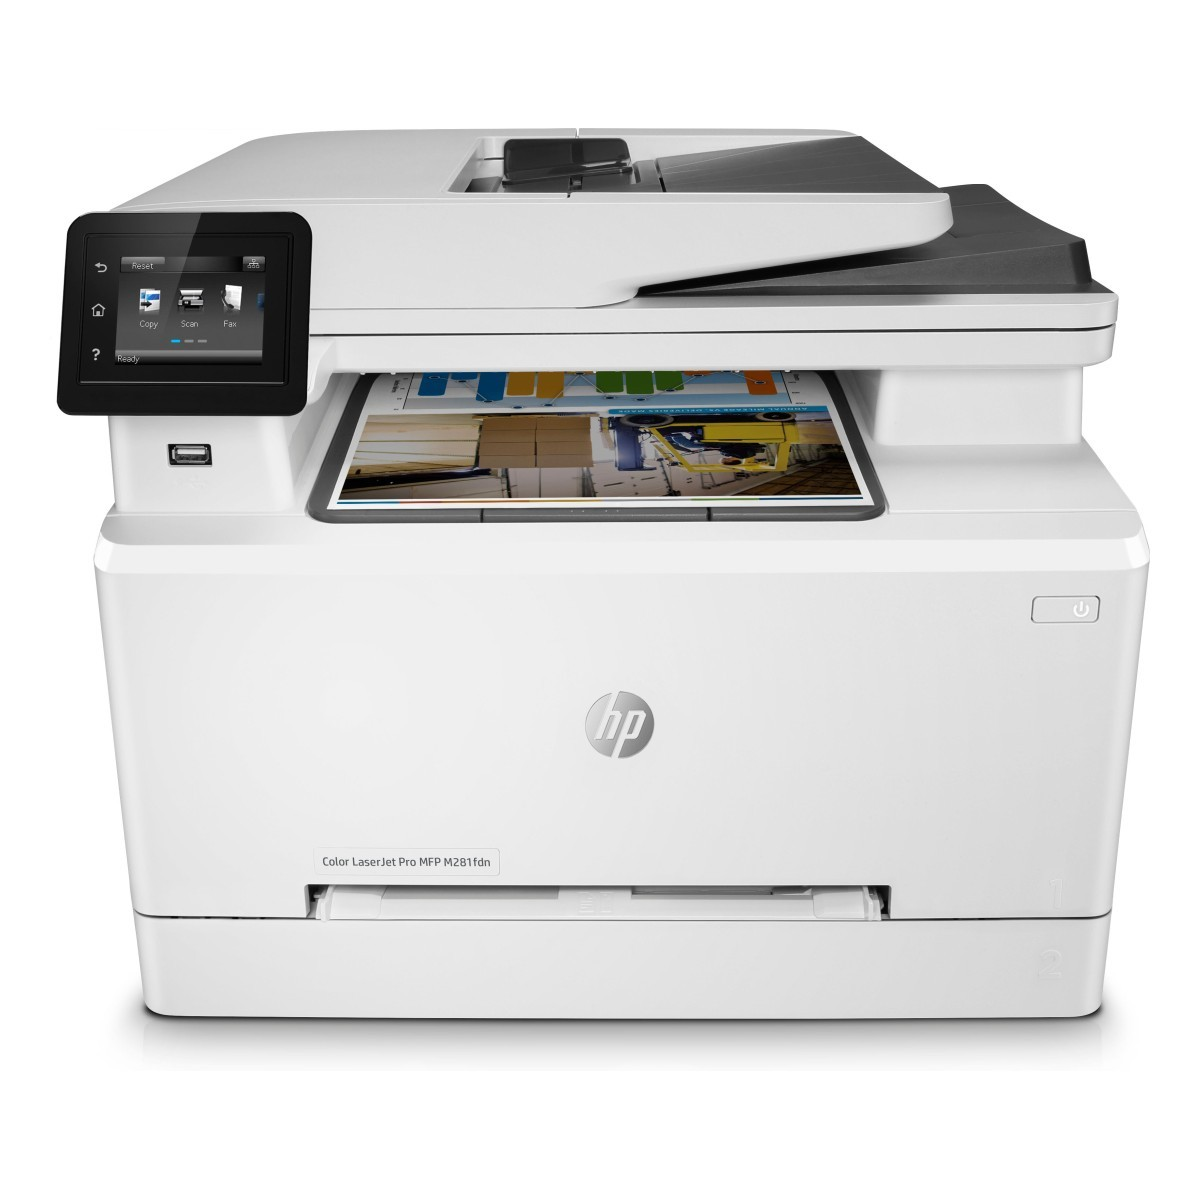 HP Color LaserJet Pro MFP M281fdn (A4, 21 ppm, USB 2.0, Ethernet, Print/Scan/Copy/fax, Duplex)